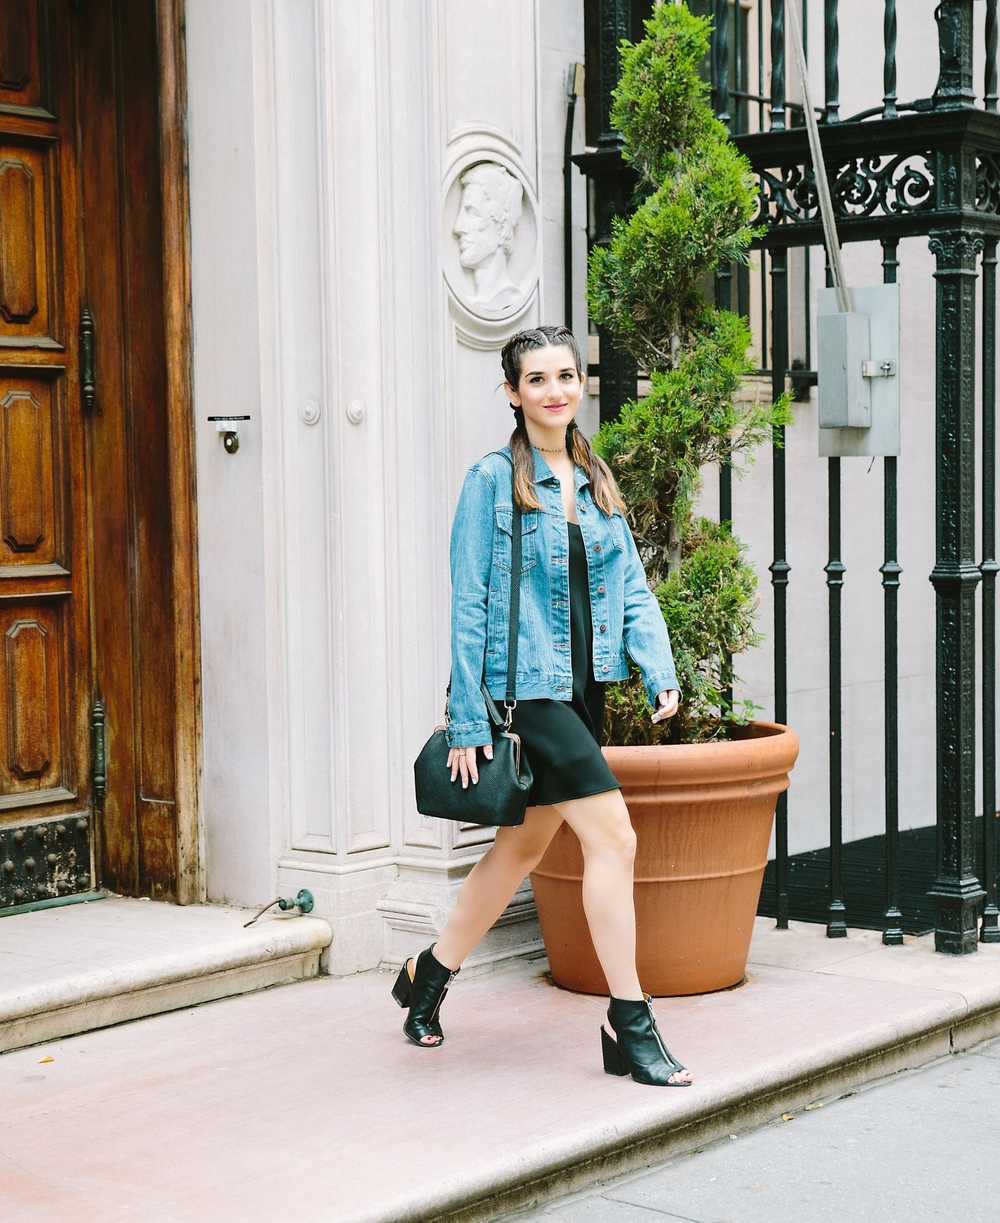 JoJo Work Bag JEMMA Louboutins & Love Fashion Blog Esther Santer NYC Street Style Blogger Outfit OOTD Denim Jean Jacket Forever 21 Nordstrom Booties Black Slip Dress Braids Hair Inspo Goals Women Girls Shop Summer Wear Purse New York City Photoshoot.jpg